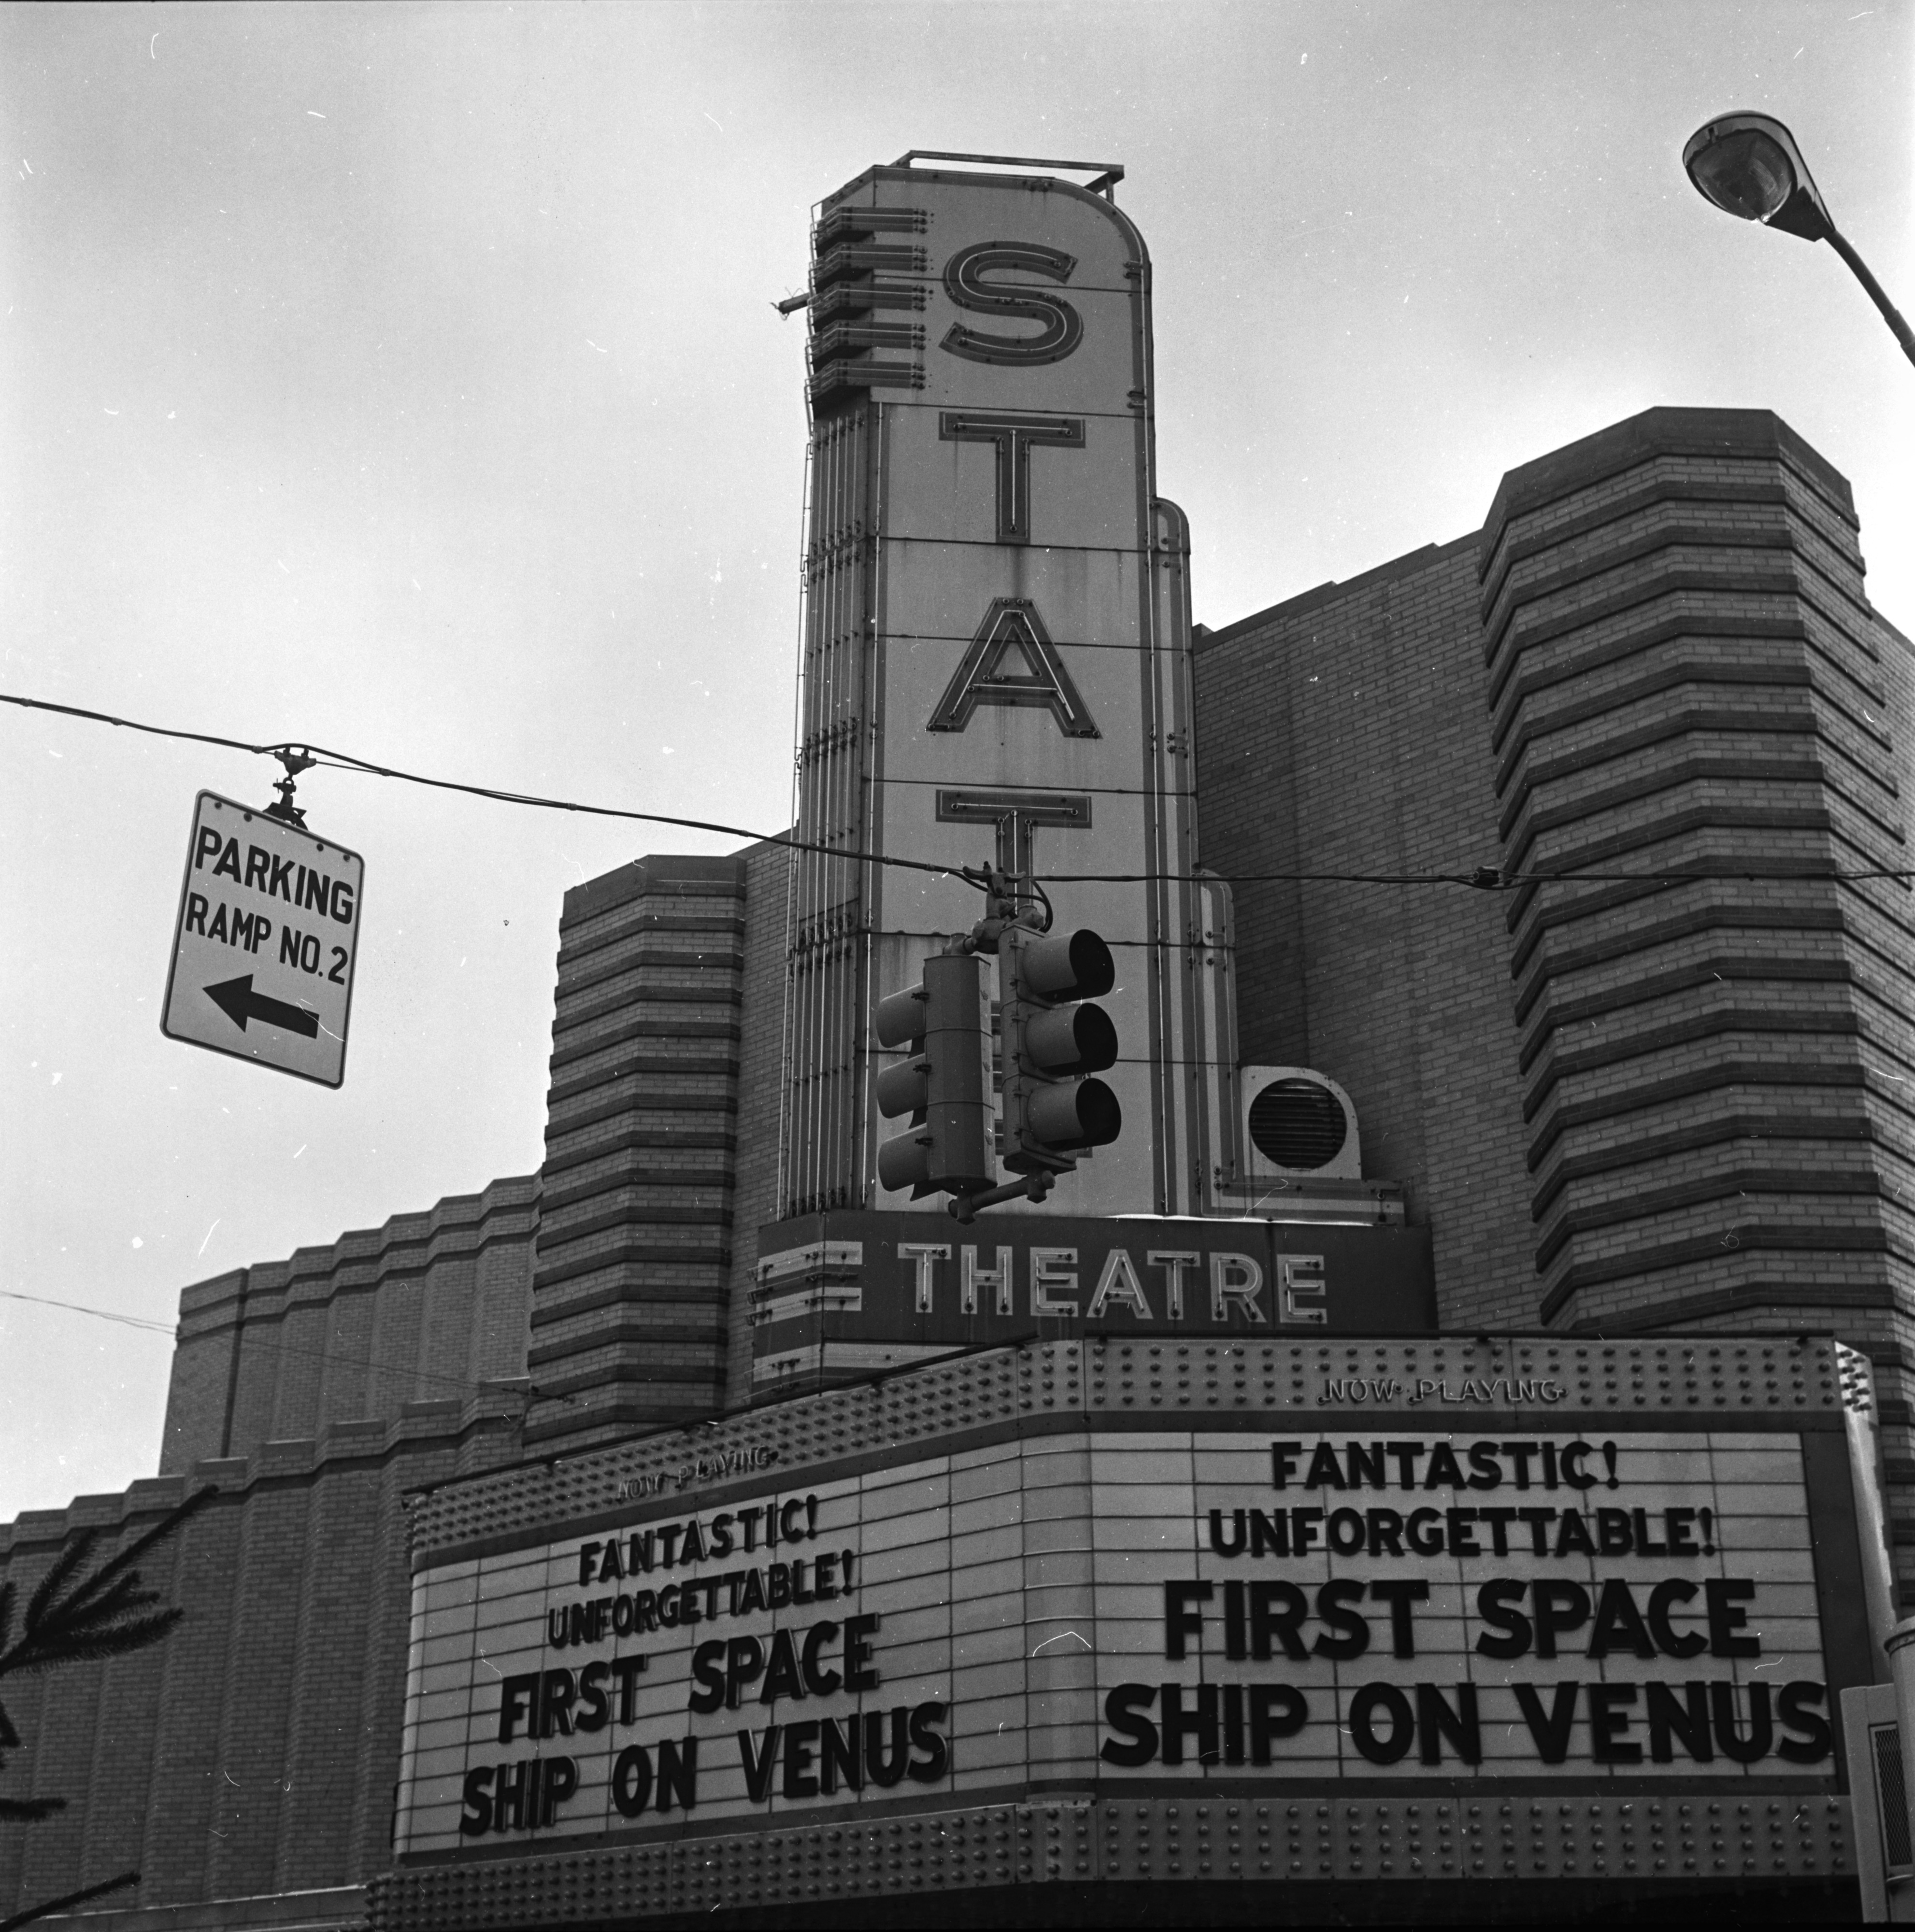 State Theater sign, December 1962 image